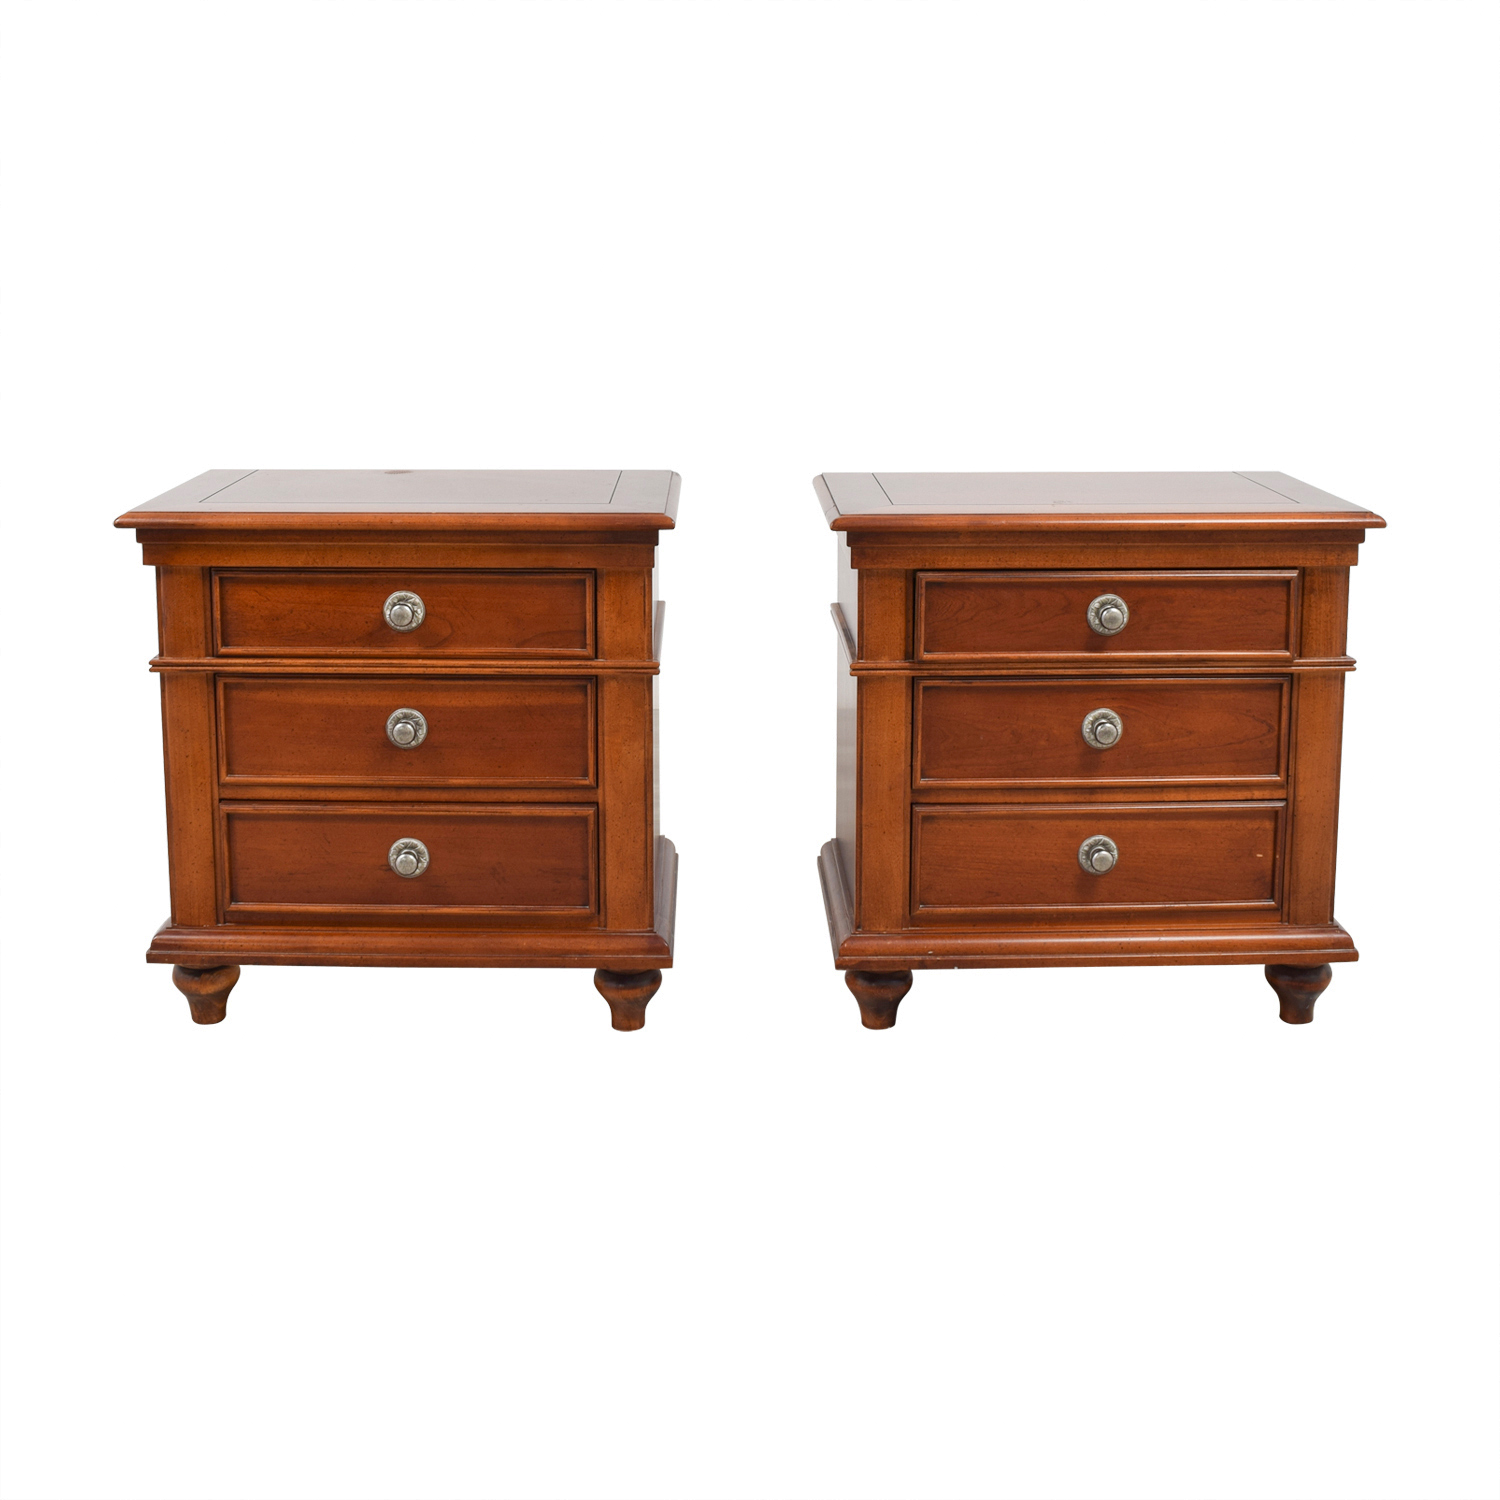 4f31e432e2a6 90% OFF - Stanley Furniture Stanley Furniture Nightstands   Tables